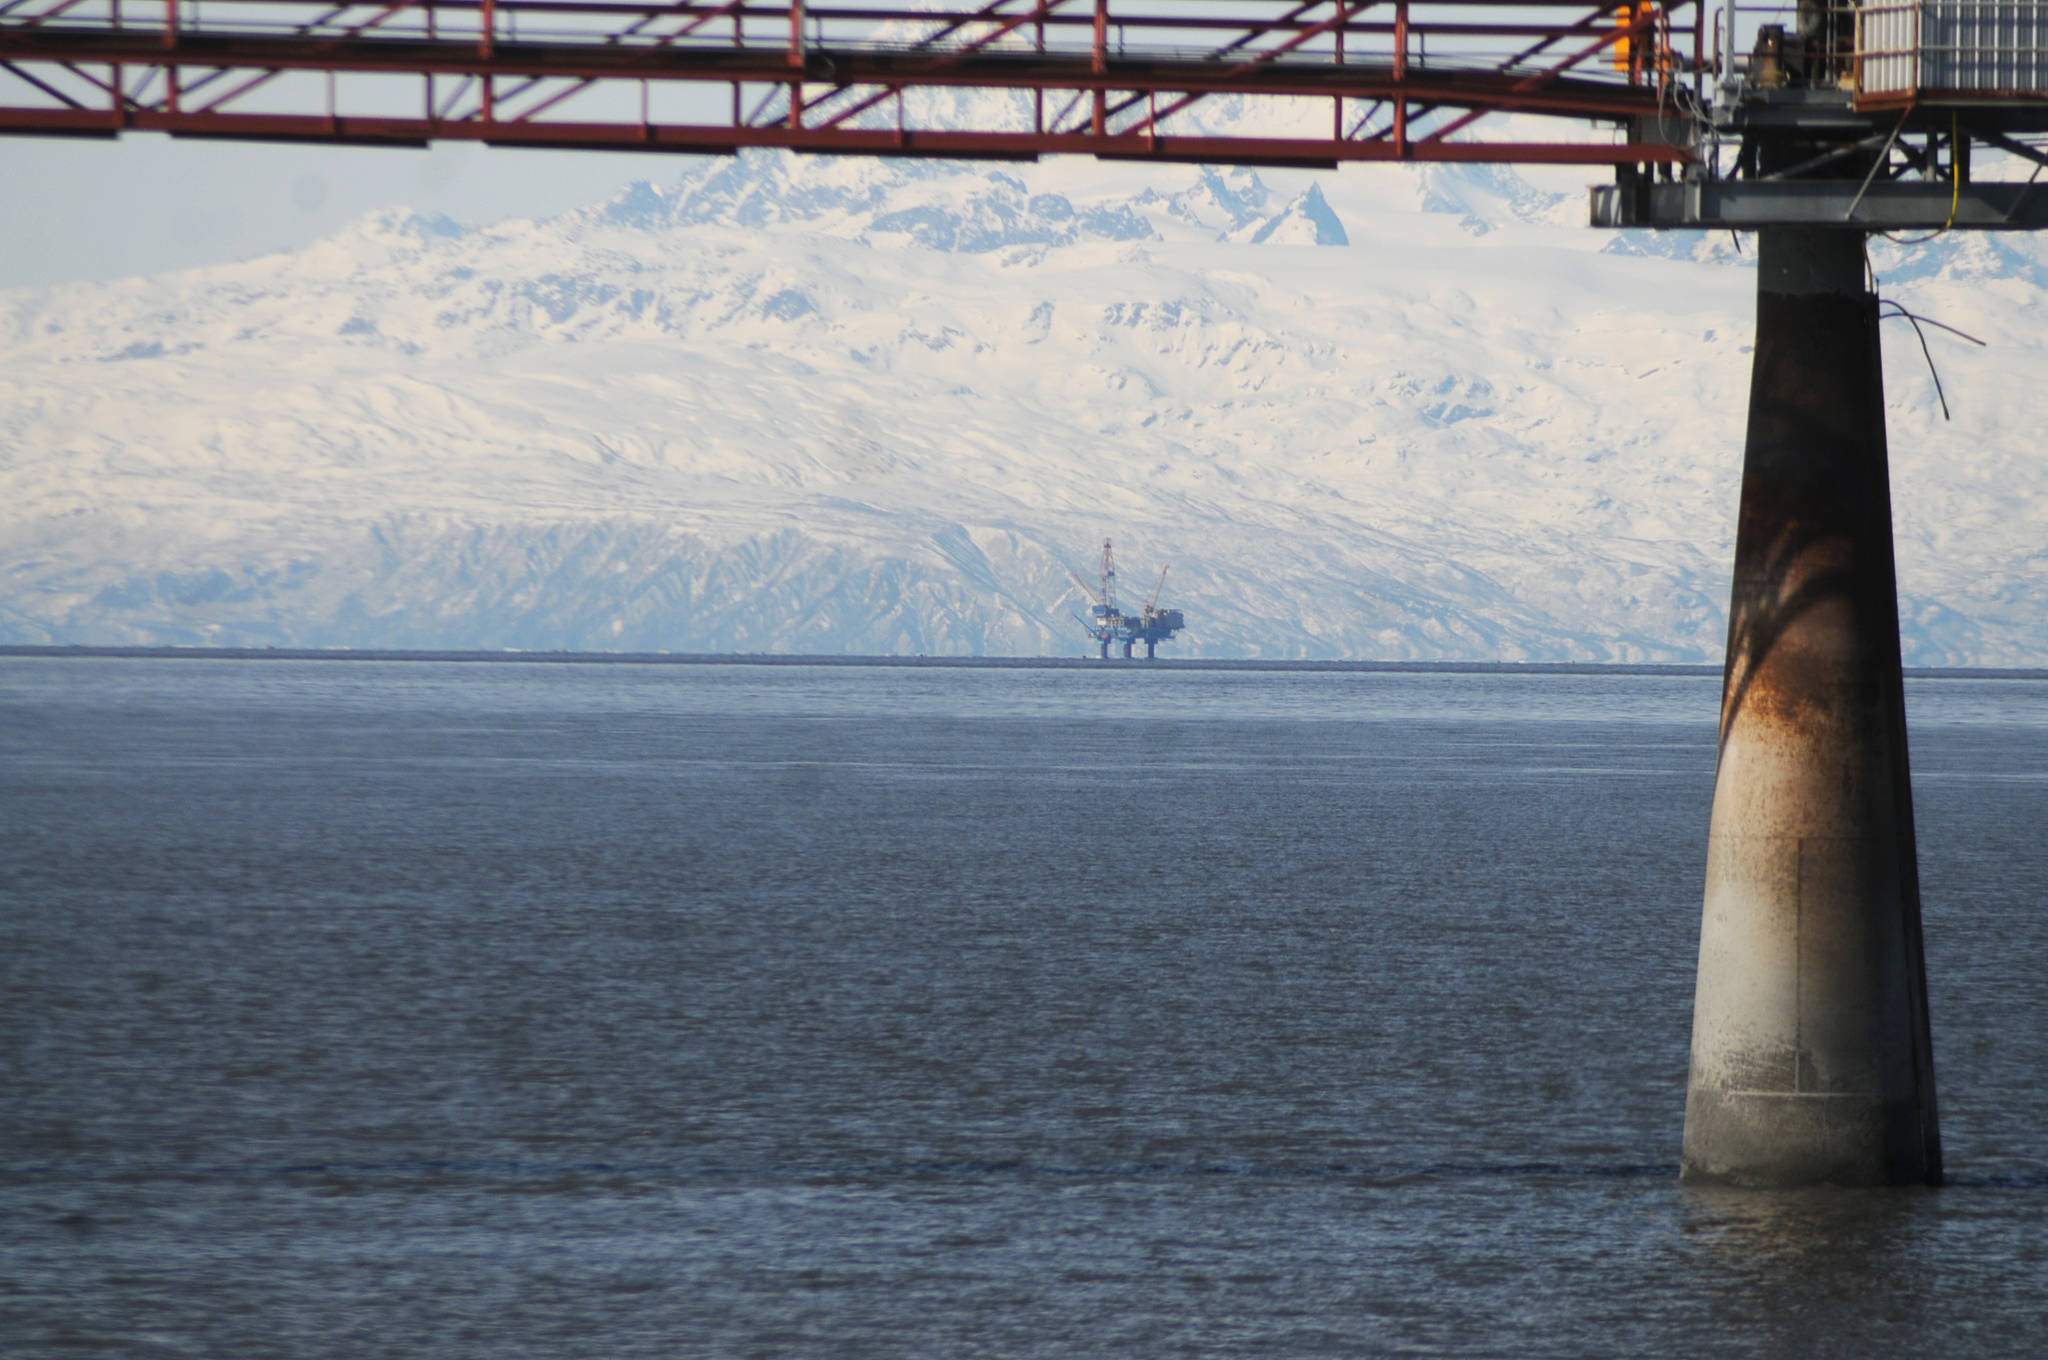 This March 31, 2018 photo shows an offshore drilling platform in Cook Inlet from a beach in Nikiski, Alaska. (Elizabeth Earl | Peninsula Clarion)